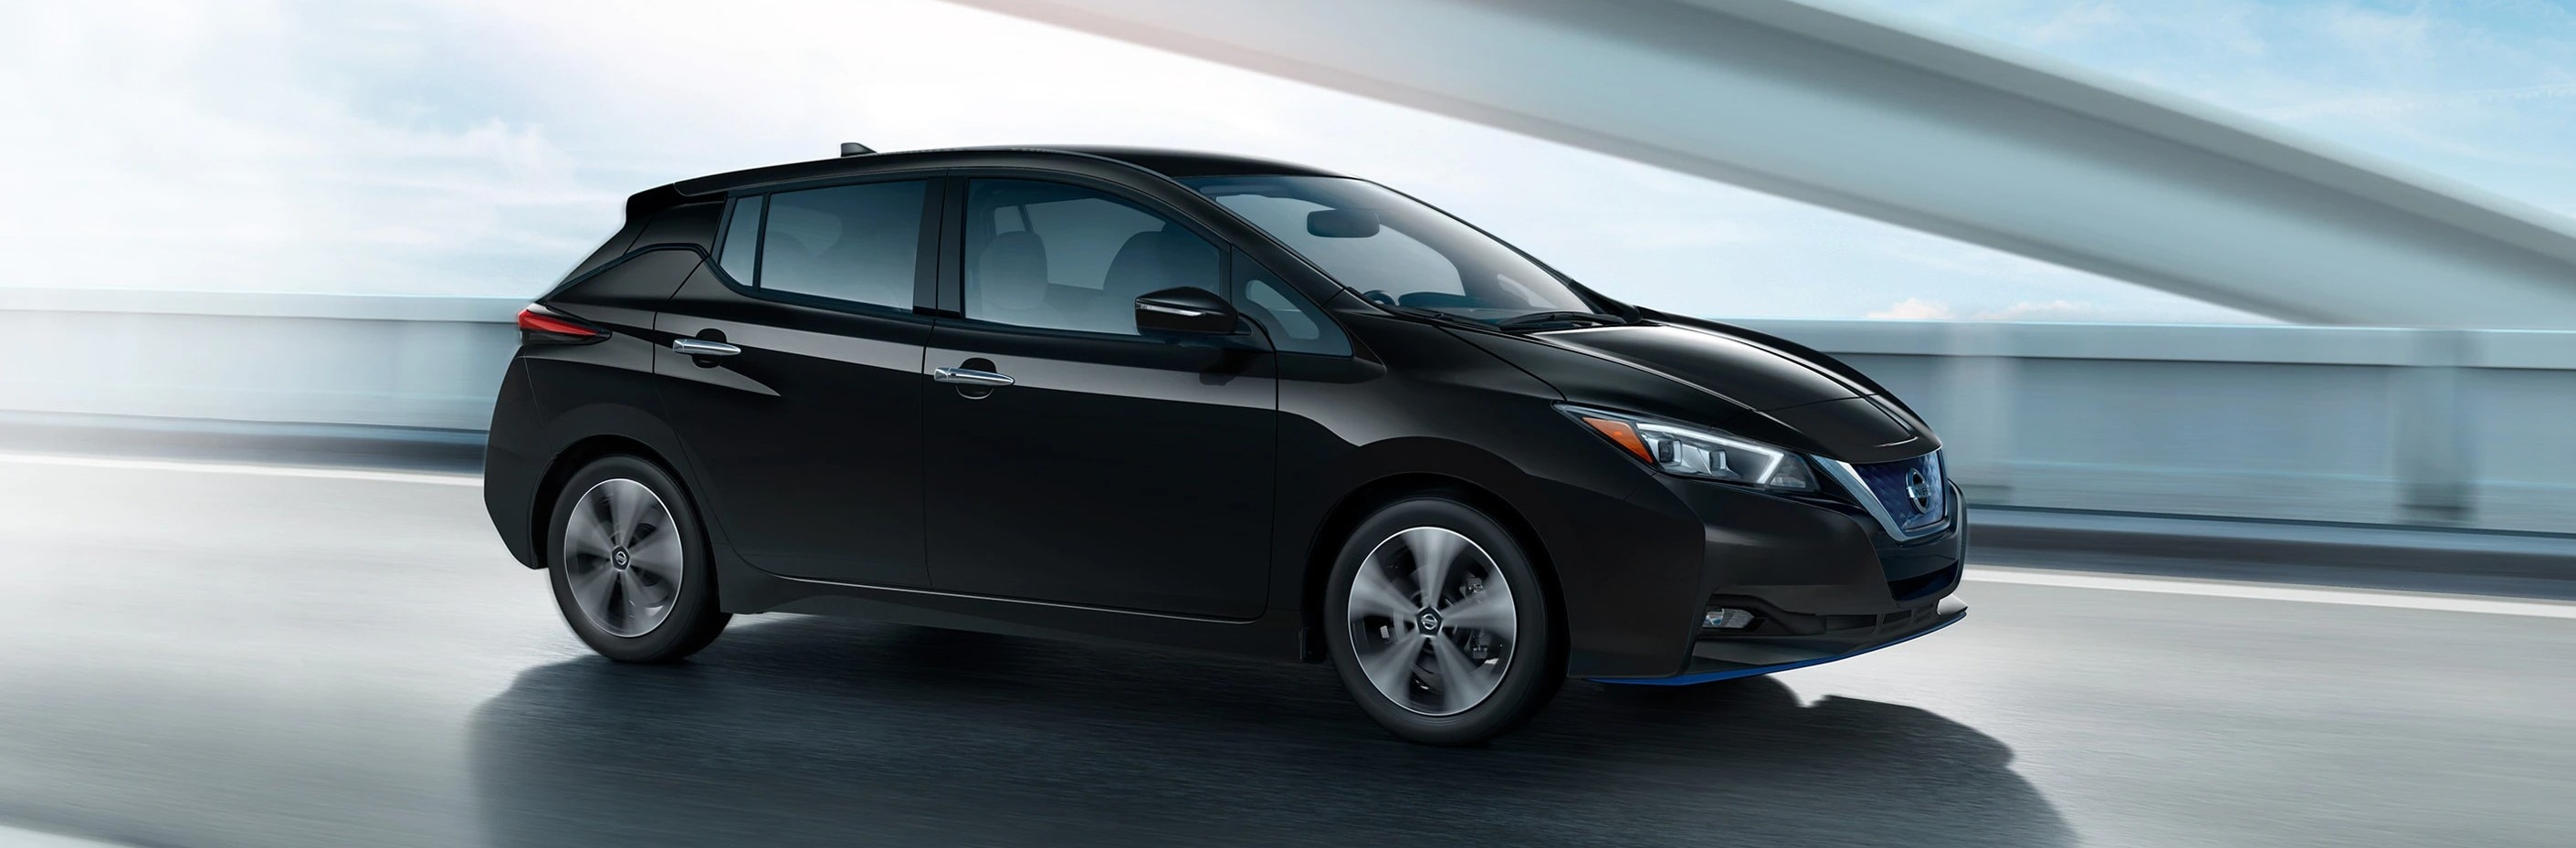 2021 Nissan Leaf exterior driving on a city street